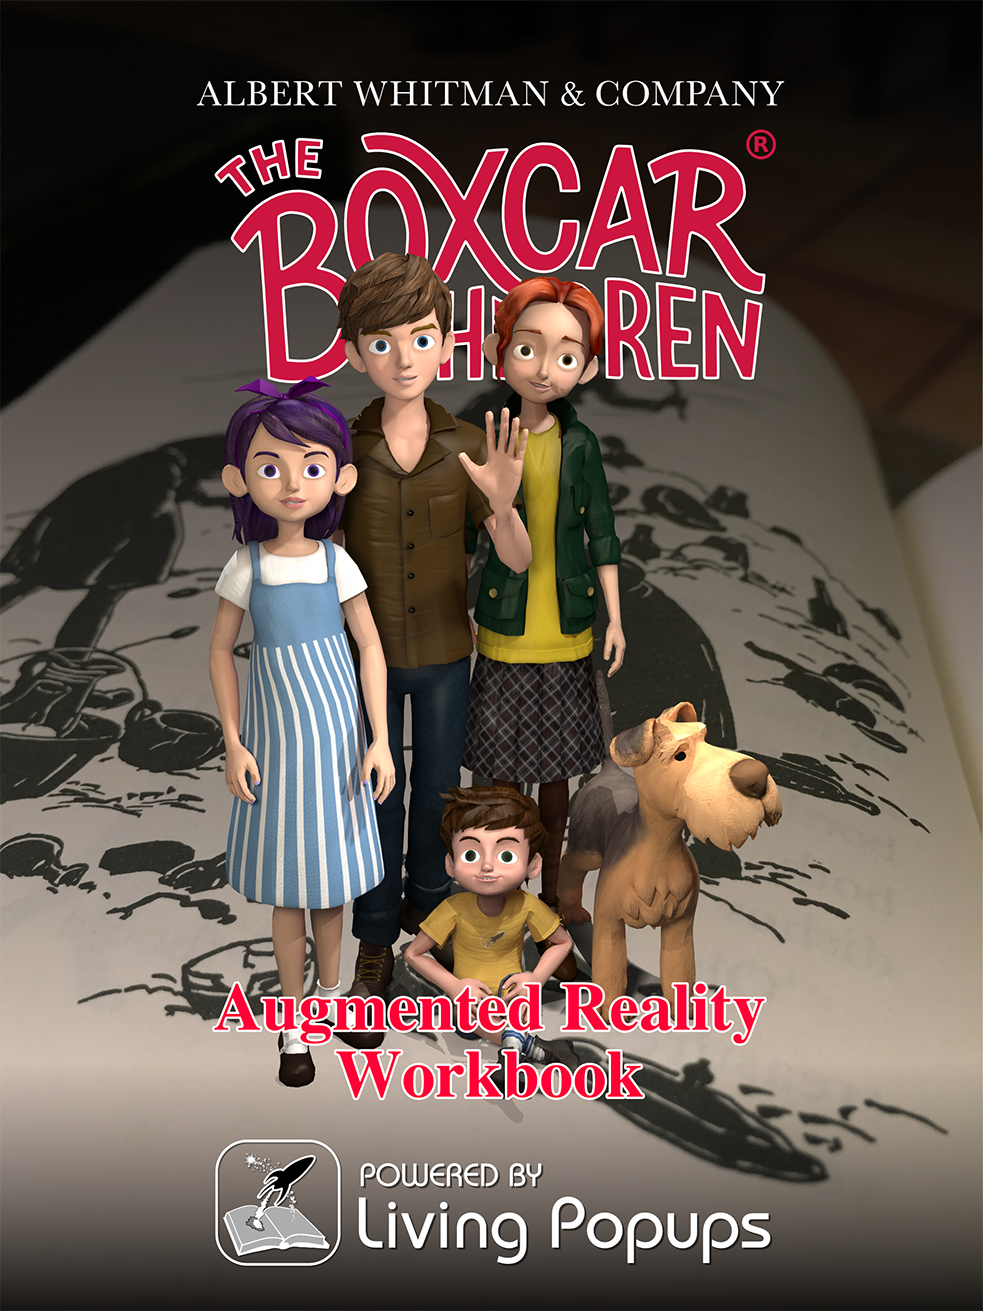 Introducing The Boxcar Children x Living Popups! Classic children's book upgraded with our innovative AR technology. - COMING SOON: for the iPhone (7 and newer) iPad (5th gen up or pro) on the iOS App Store. Coming to Android July 15th.The Boxcar Children (book #1) paperback or hardcover, illustrated by L. Kate Deal.BUY THE BOOK: Barnes & Noble Amazon